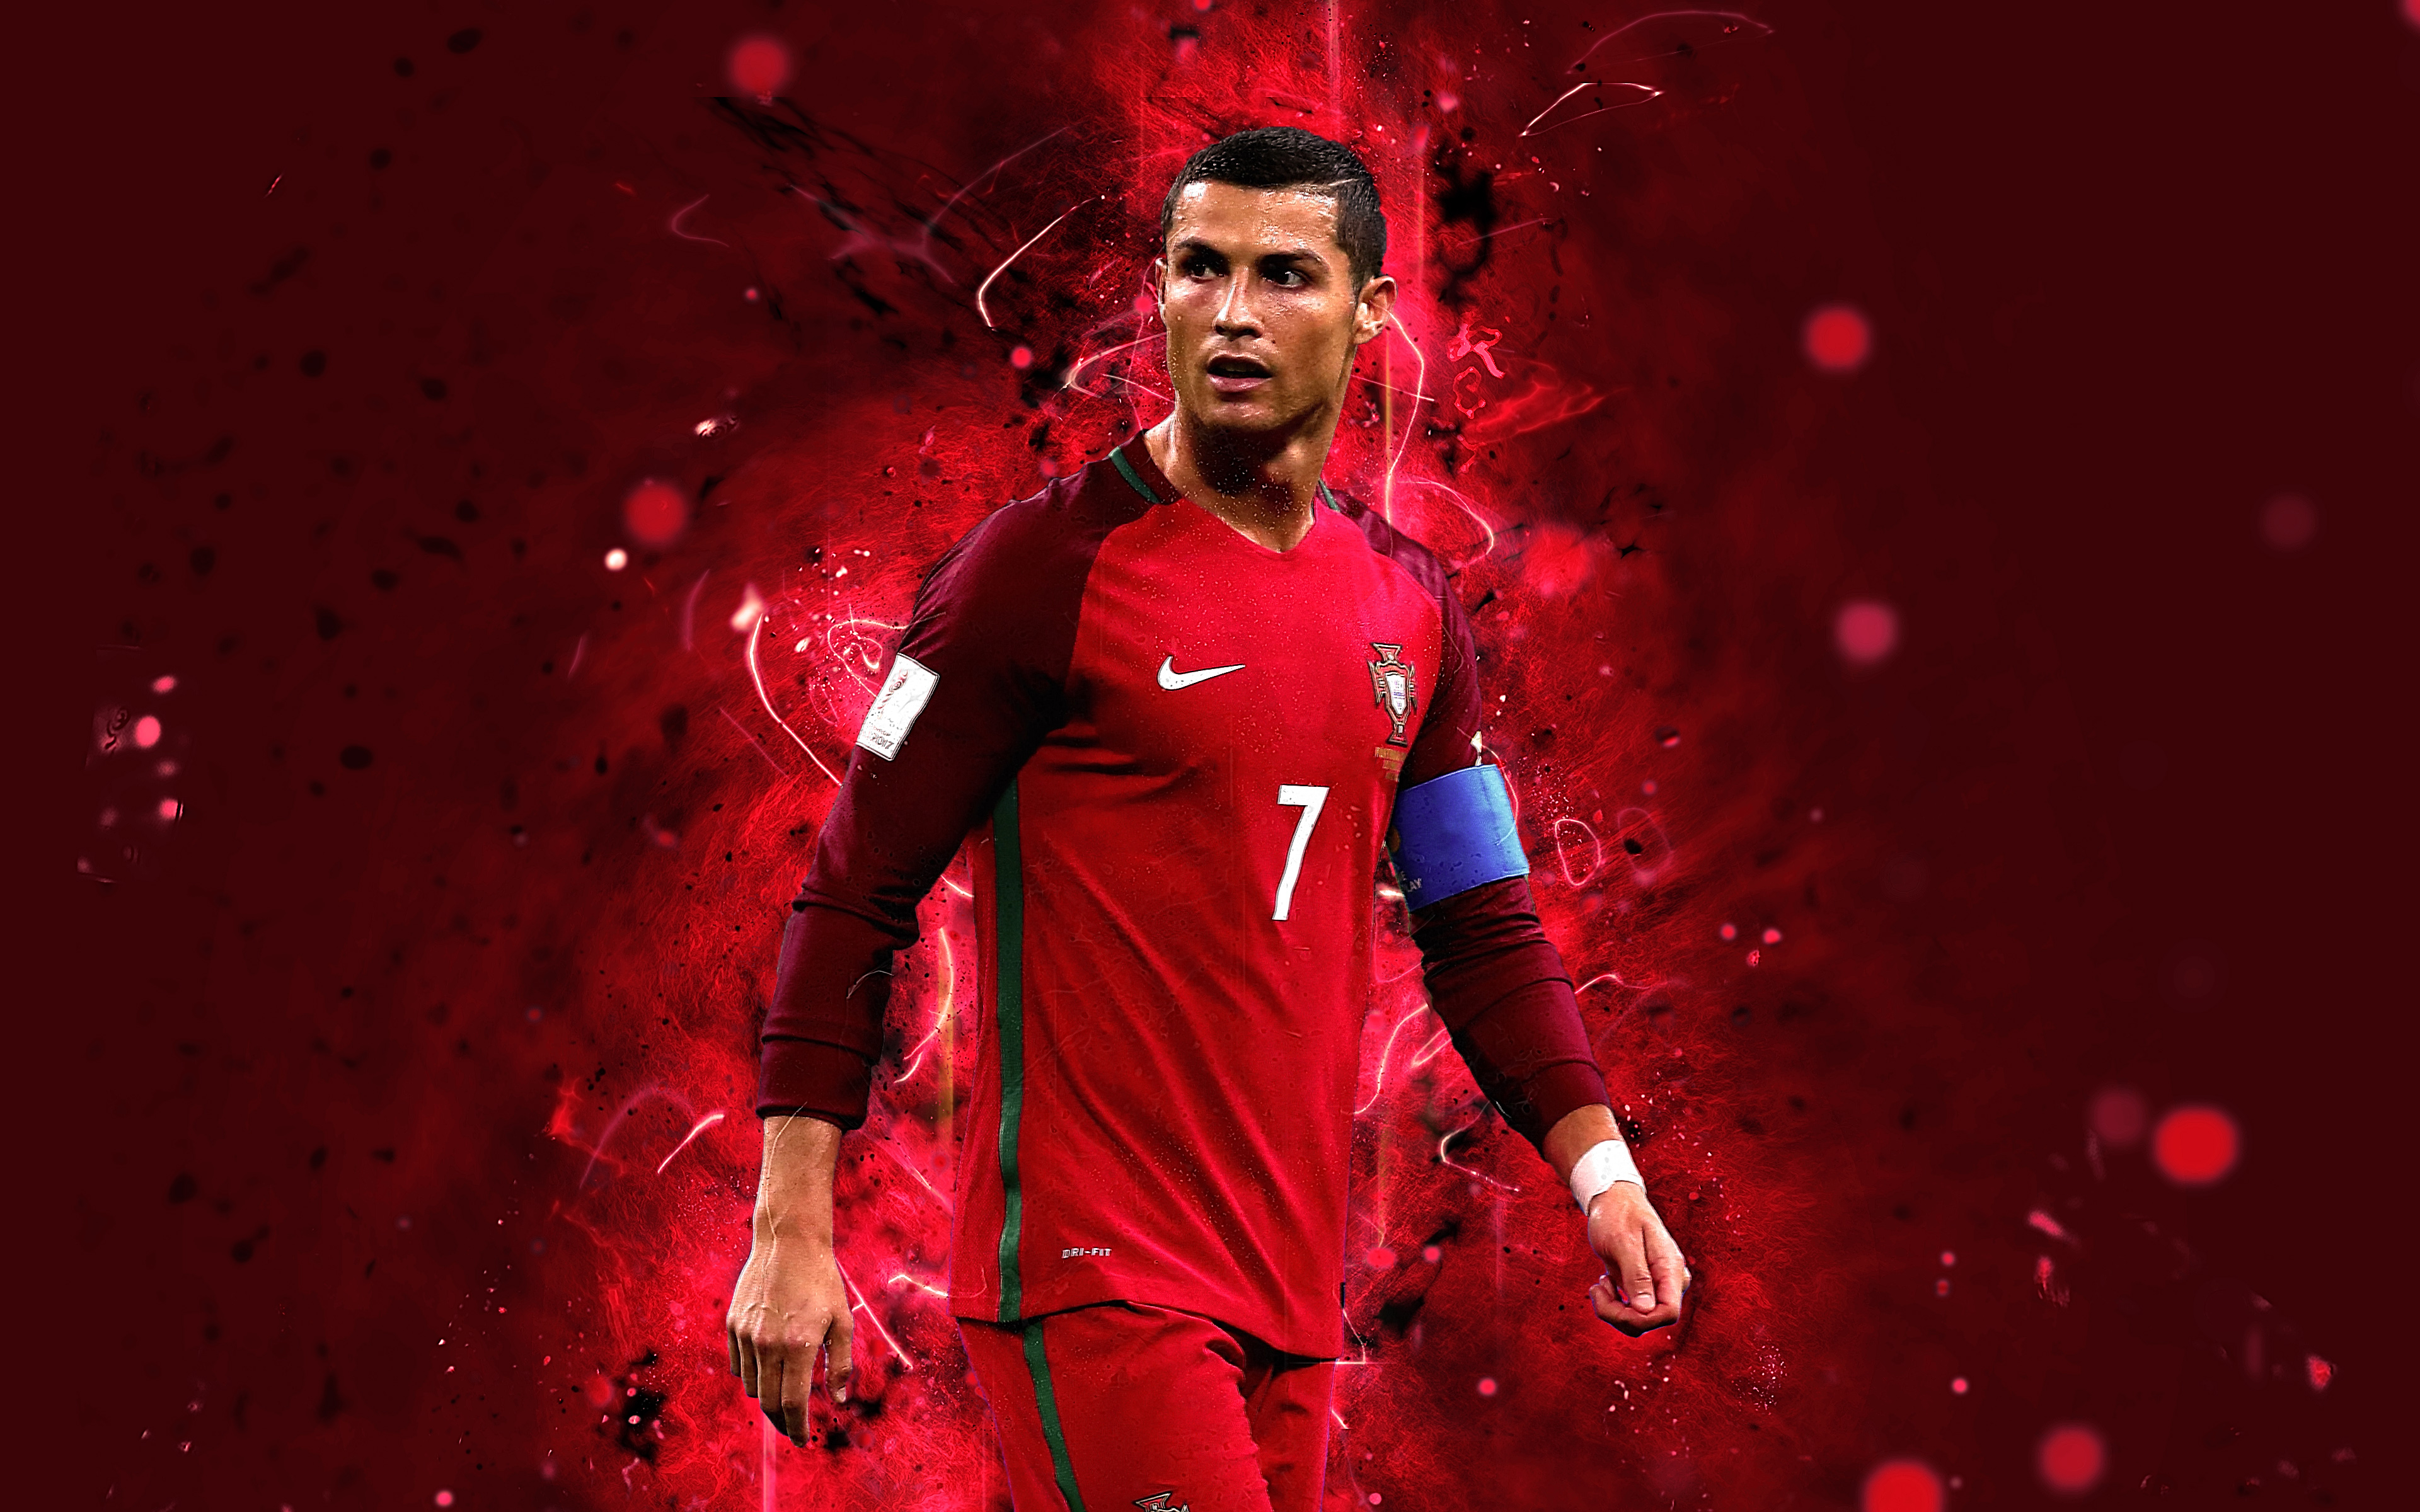 Cristiano Ronaldo - Portugal 4k Ultra HD Wallpaper | Background Image |  3840x2400 | ID:961948 - Wallpaper Abyss